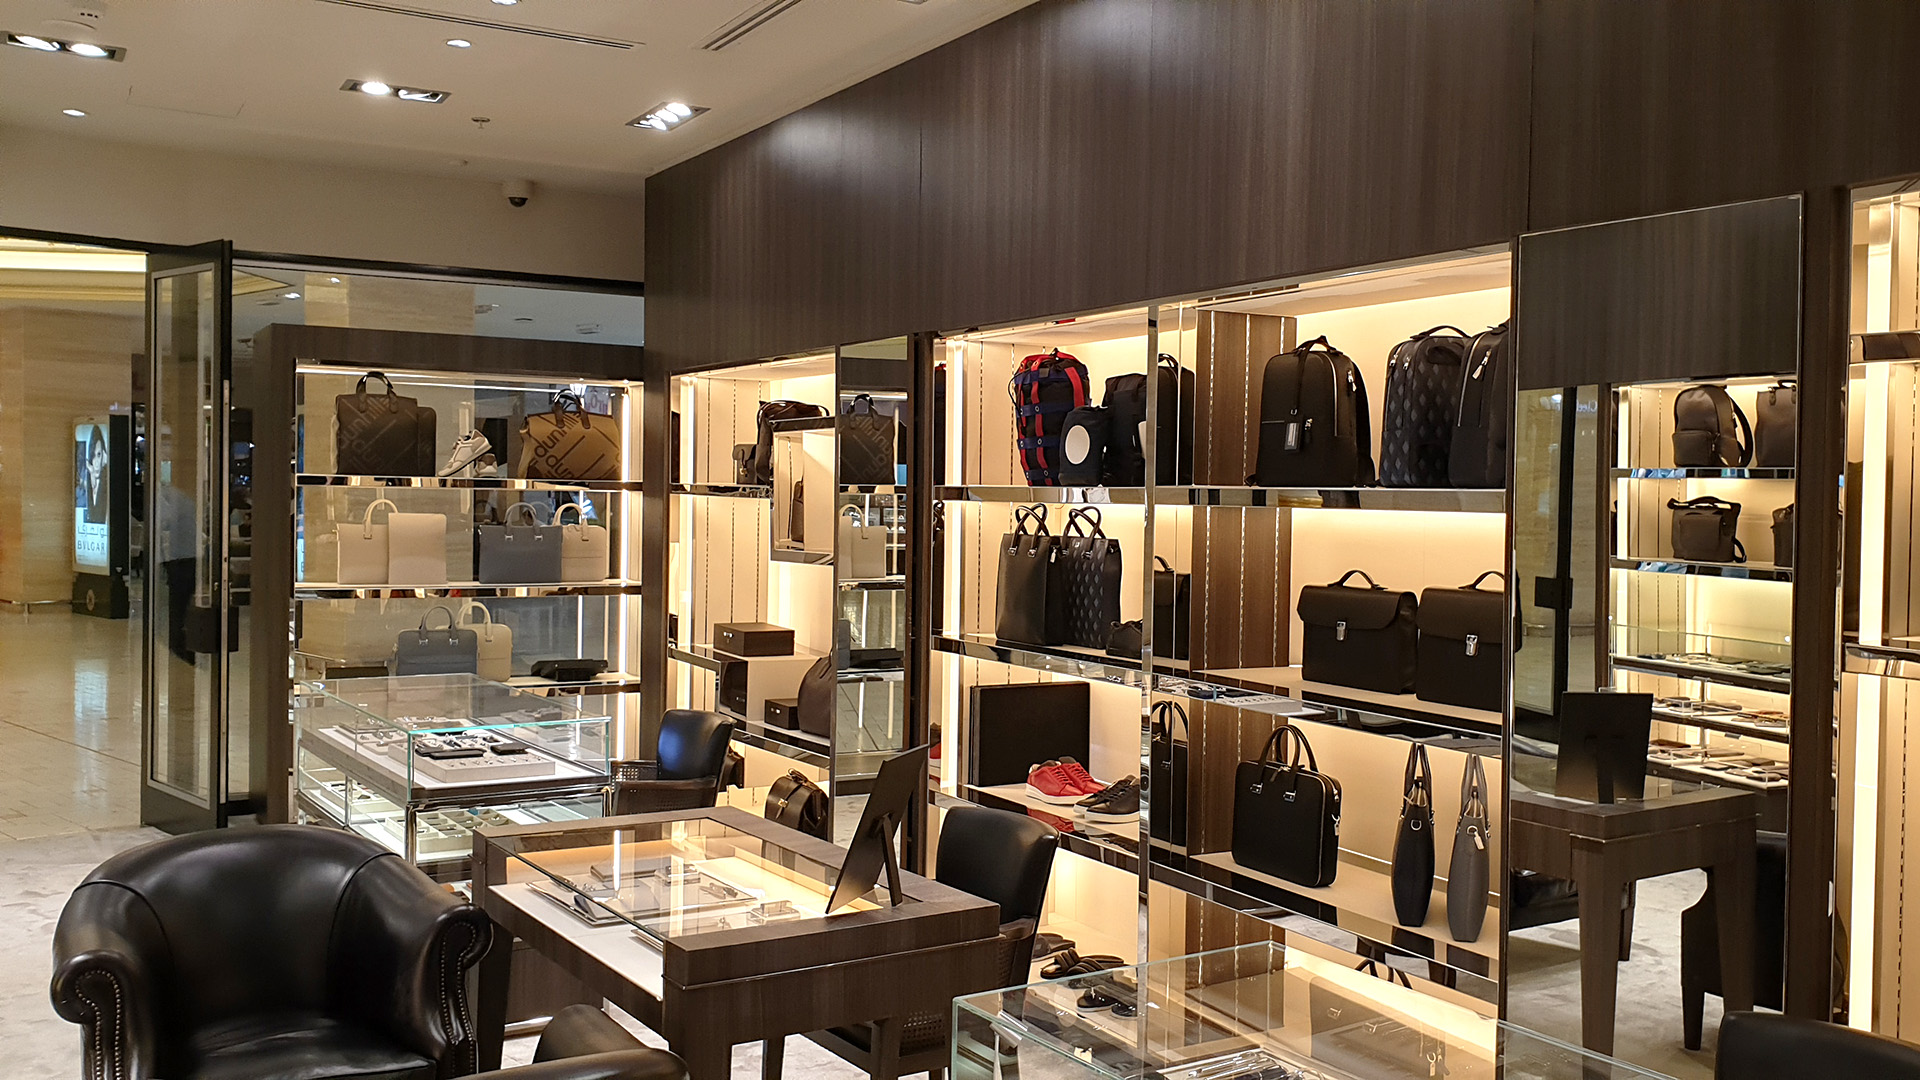 Refurbished Interior for Dunhill in Villagio using 3M DiNOC - implemented by ME Visual, Qatar